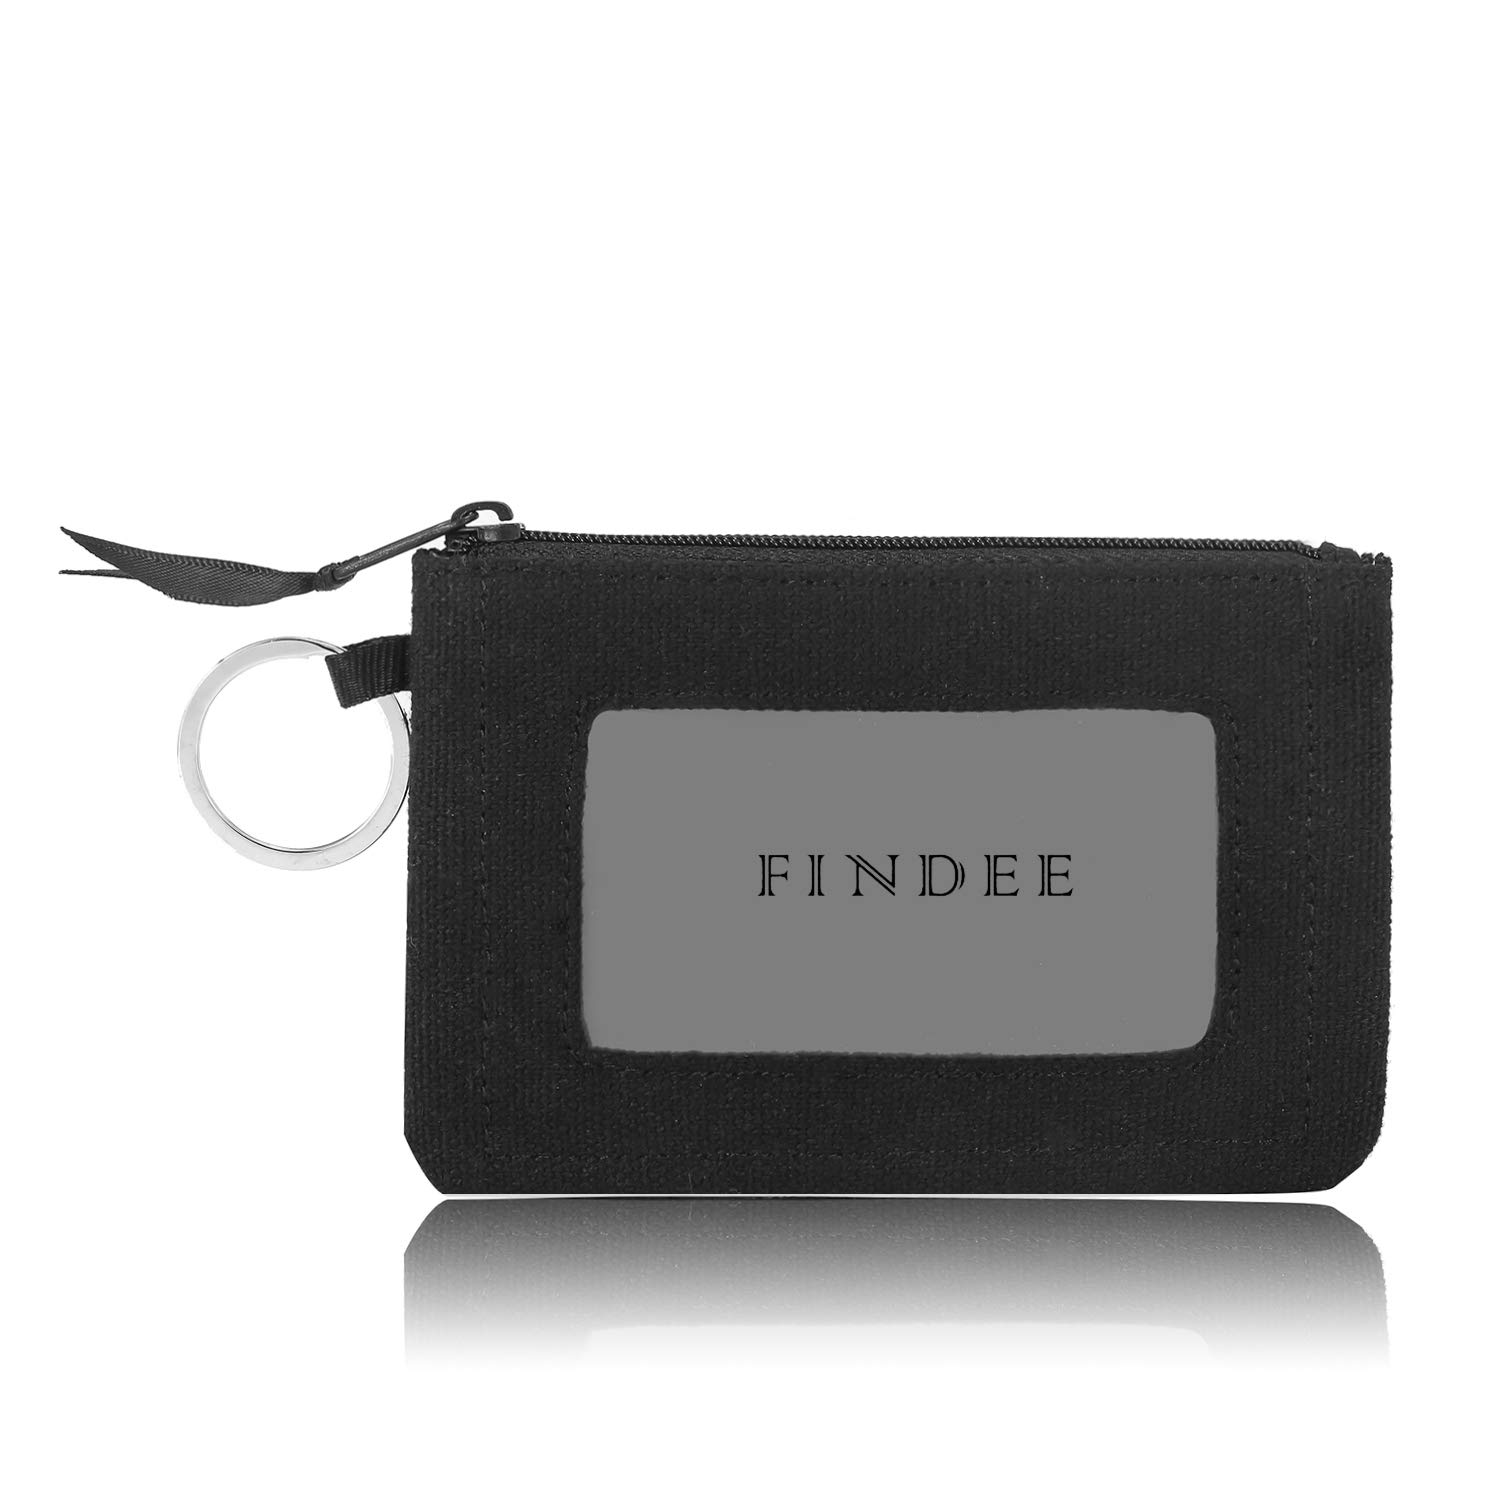 Iconic Zip ID Case Wallet/Coin Purse with Id Window - Signature Cotton